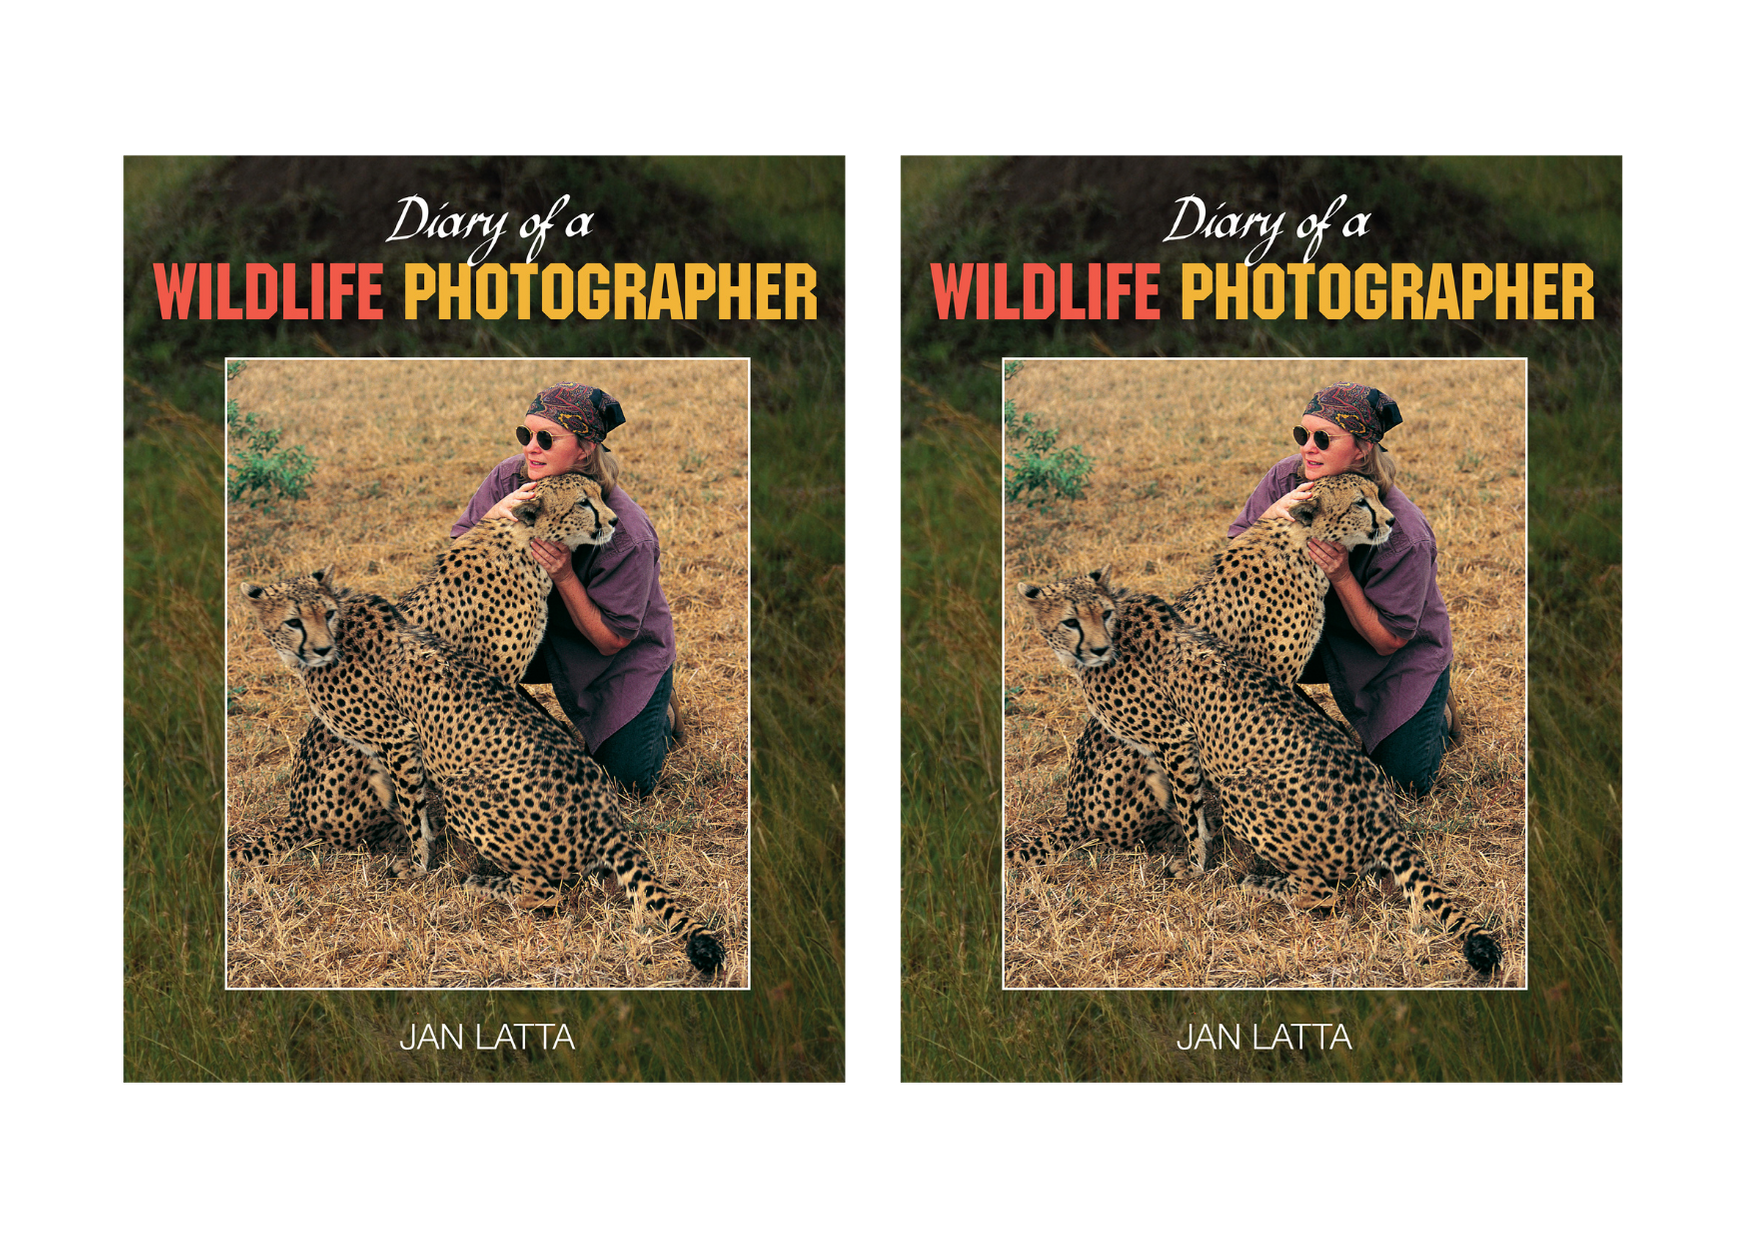 Diary of a Wildlife Photgrapher